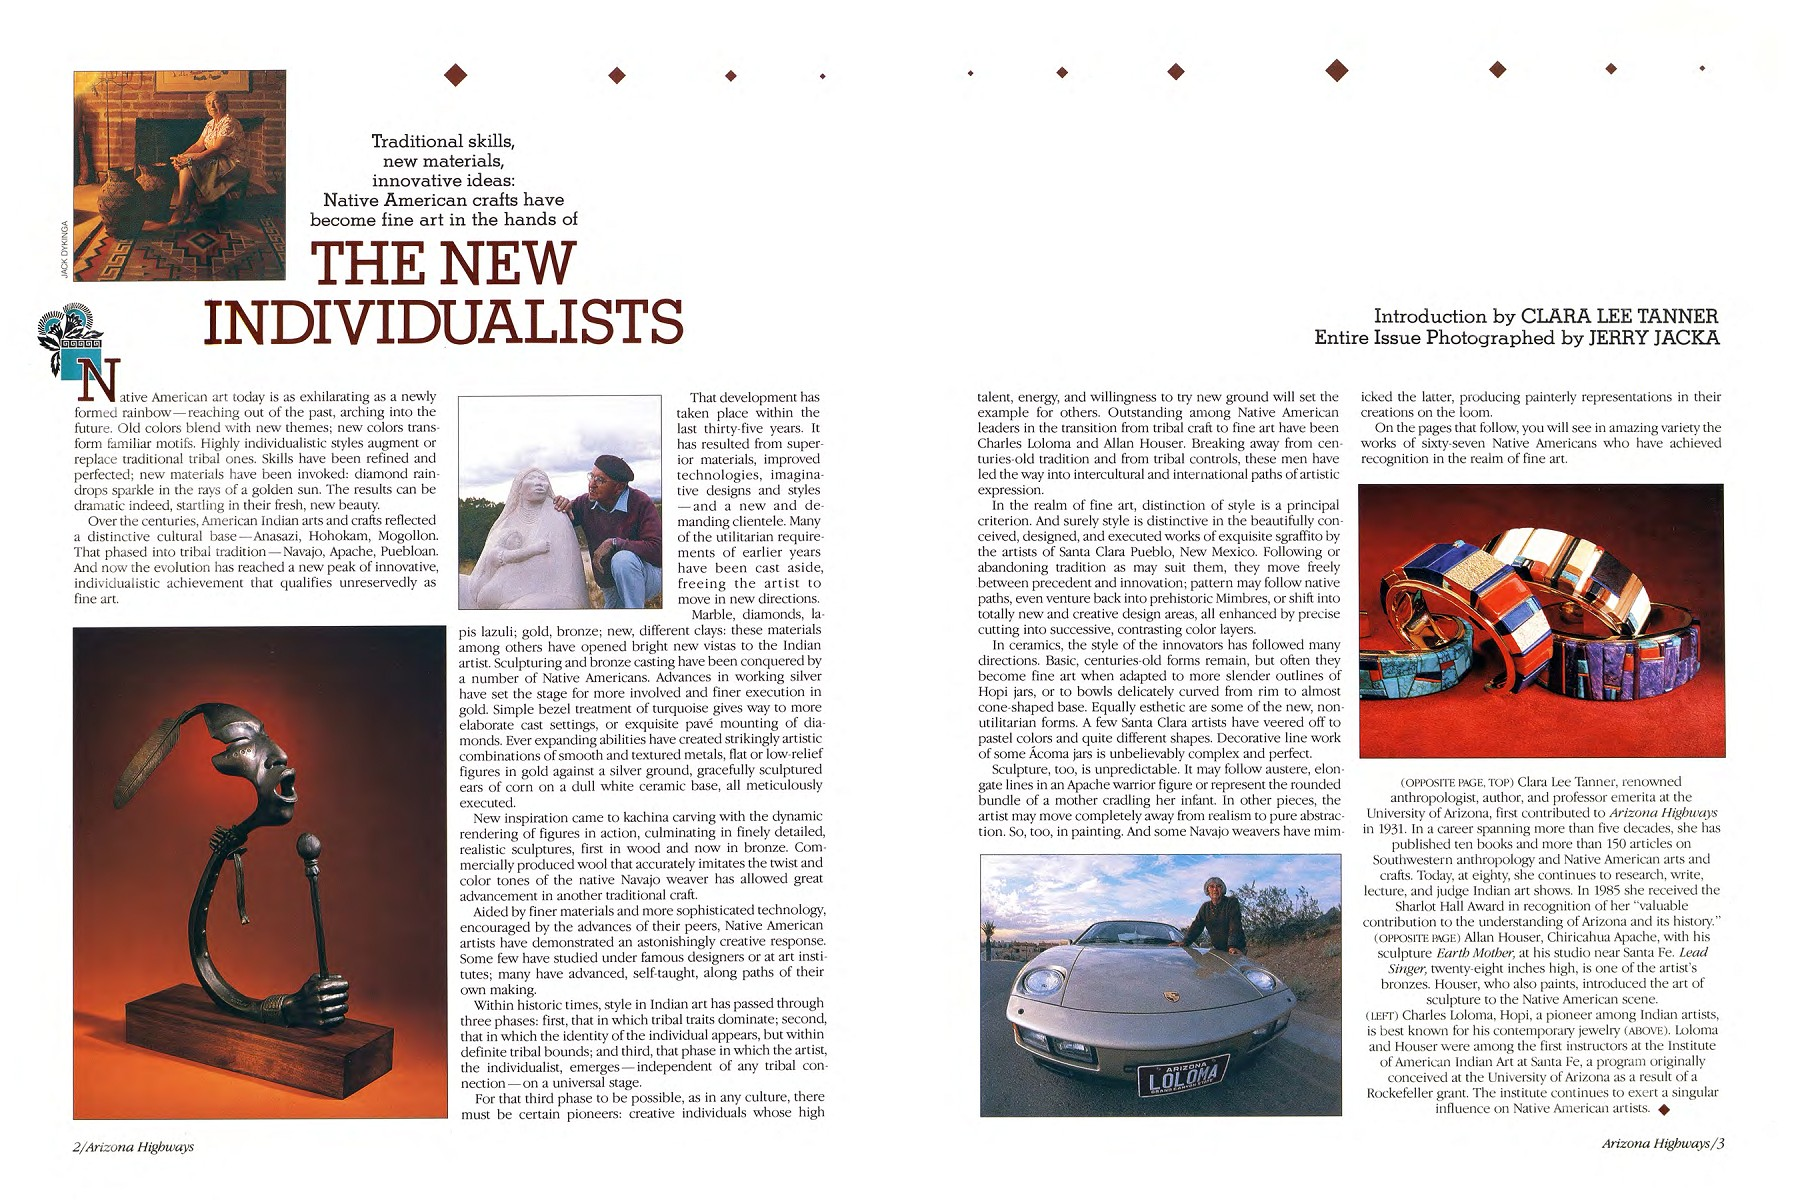 Arizona Highways 1986 - The New Individualists Pages 1 - 27